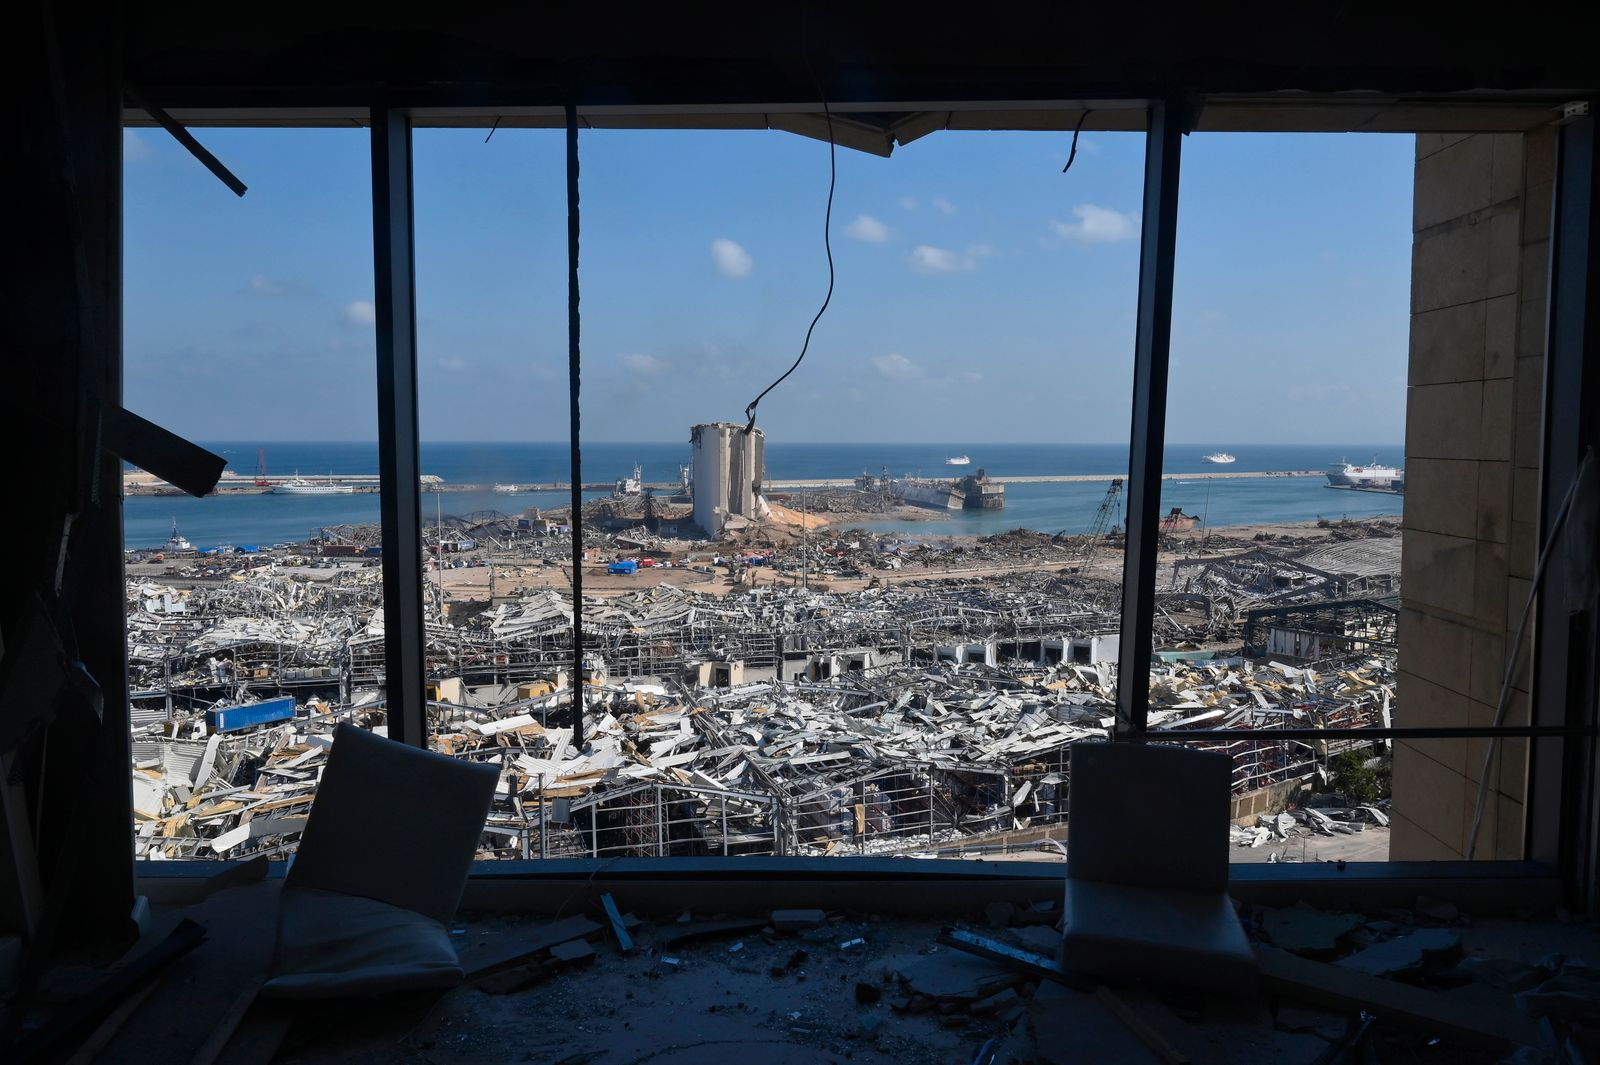 One year anniversary of Port explosion in Beirut